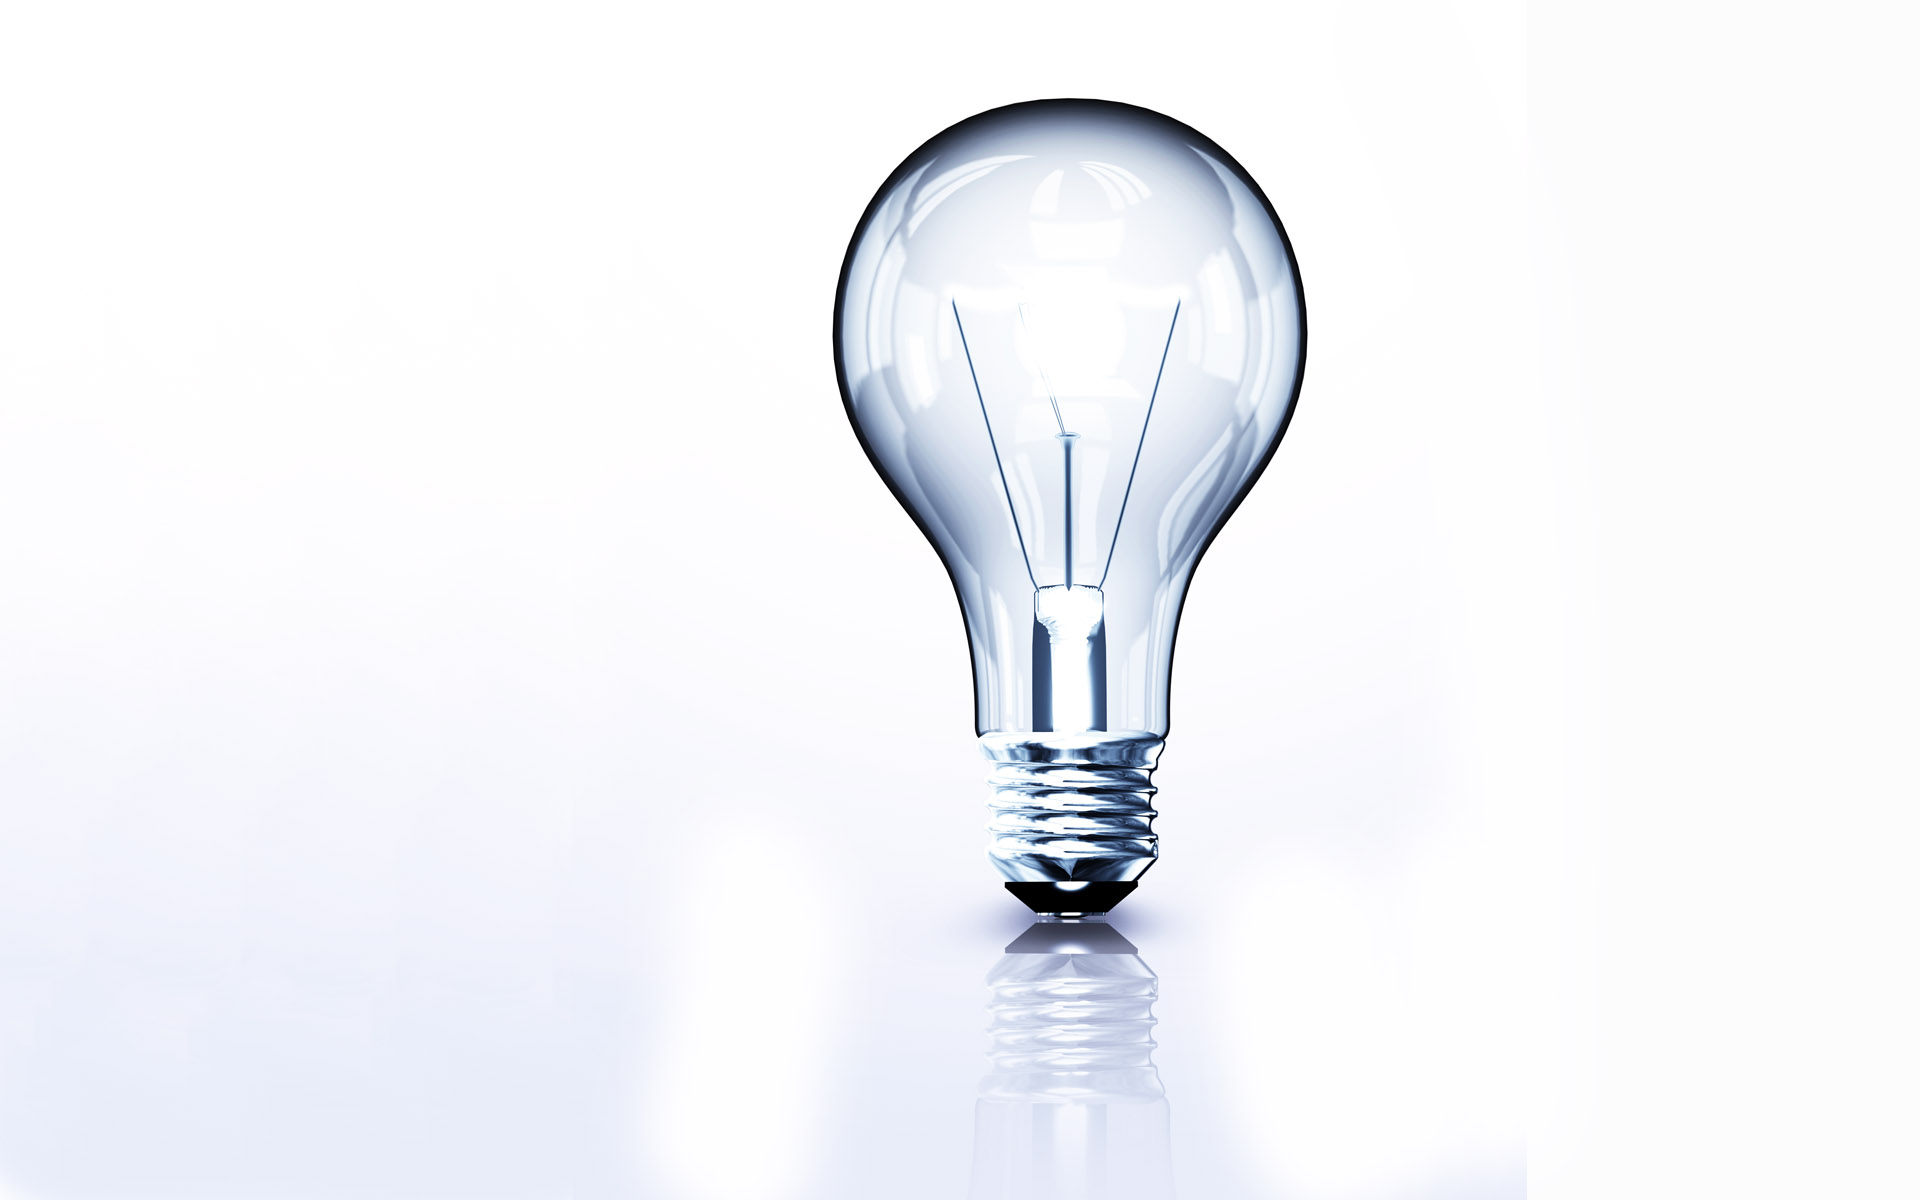 light bulb wallpaper